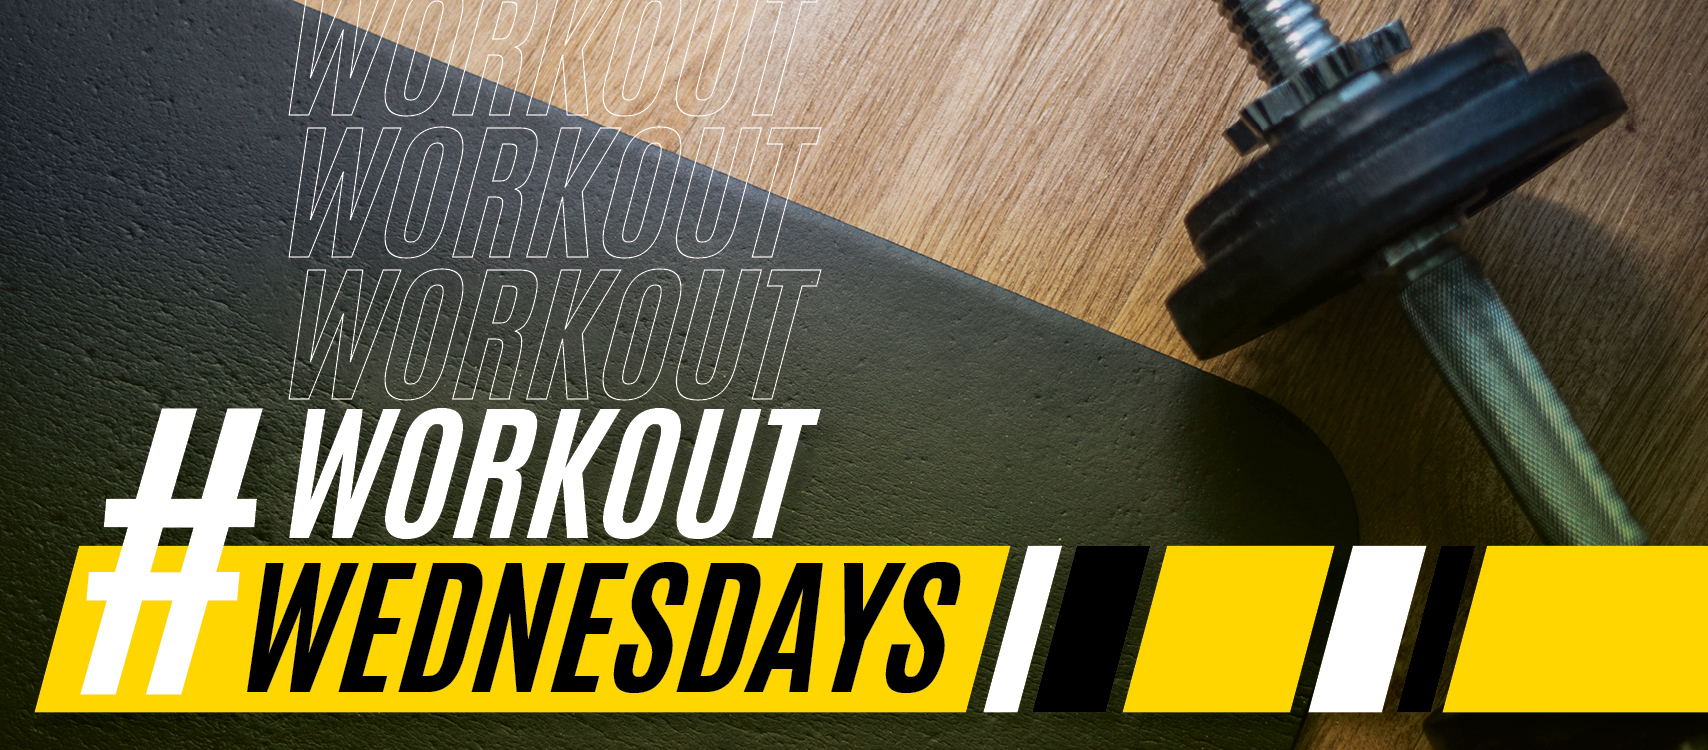 #workoutwednesdays with CAB - 7:00am